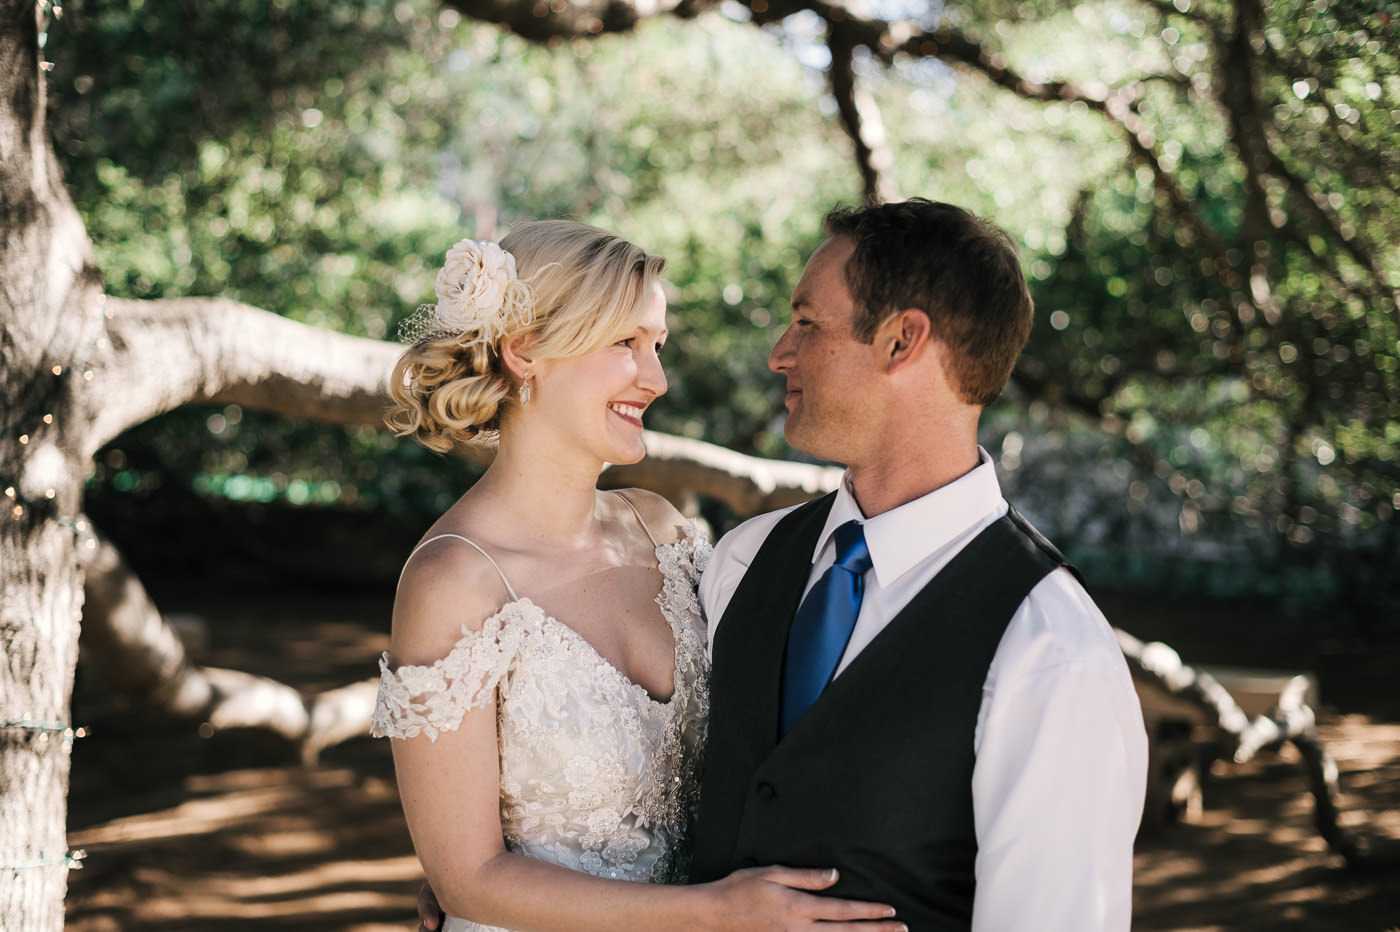 bride and groom enjoy the shade of an old oak tree as they smile at each other after an intimate first look